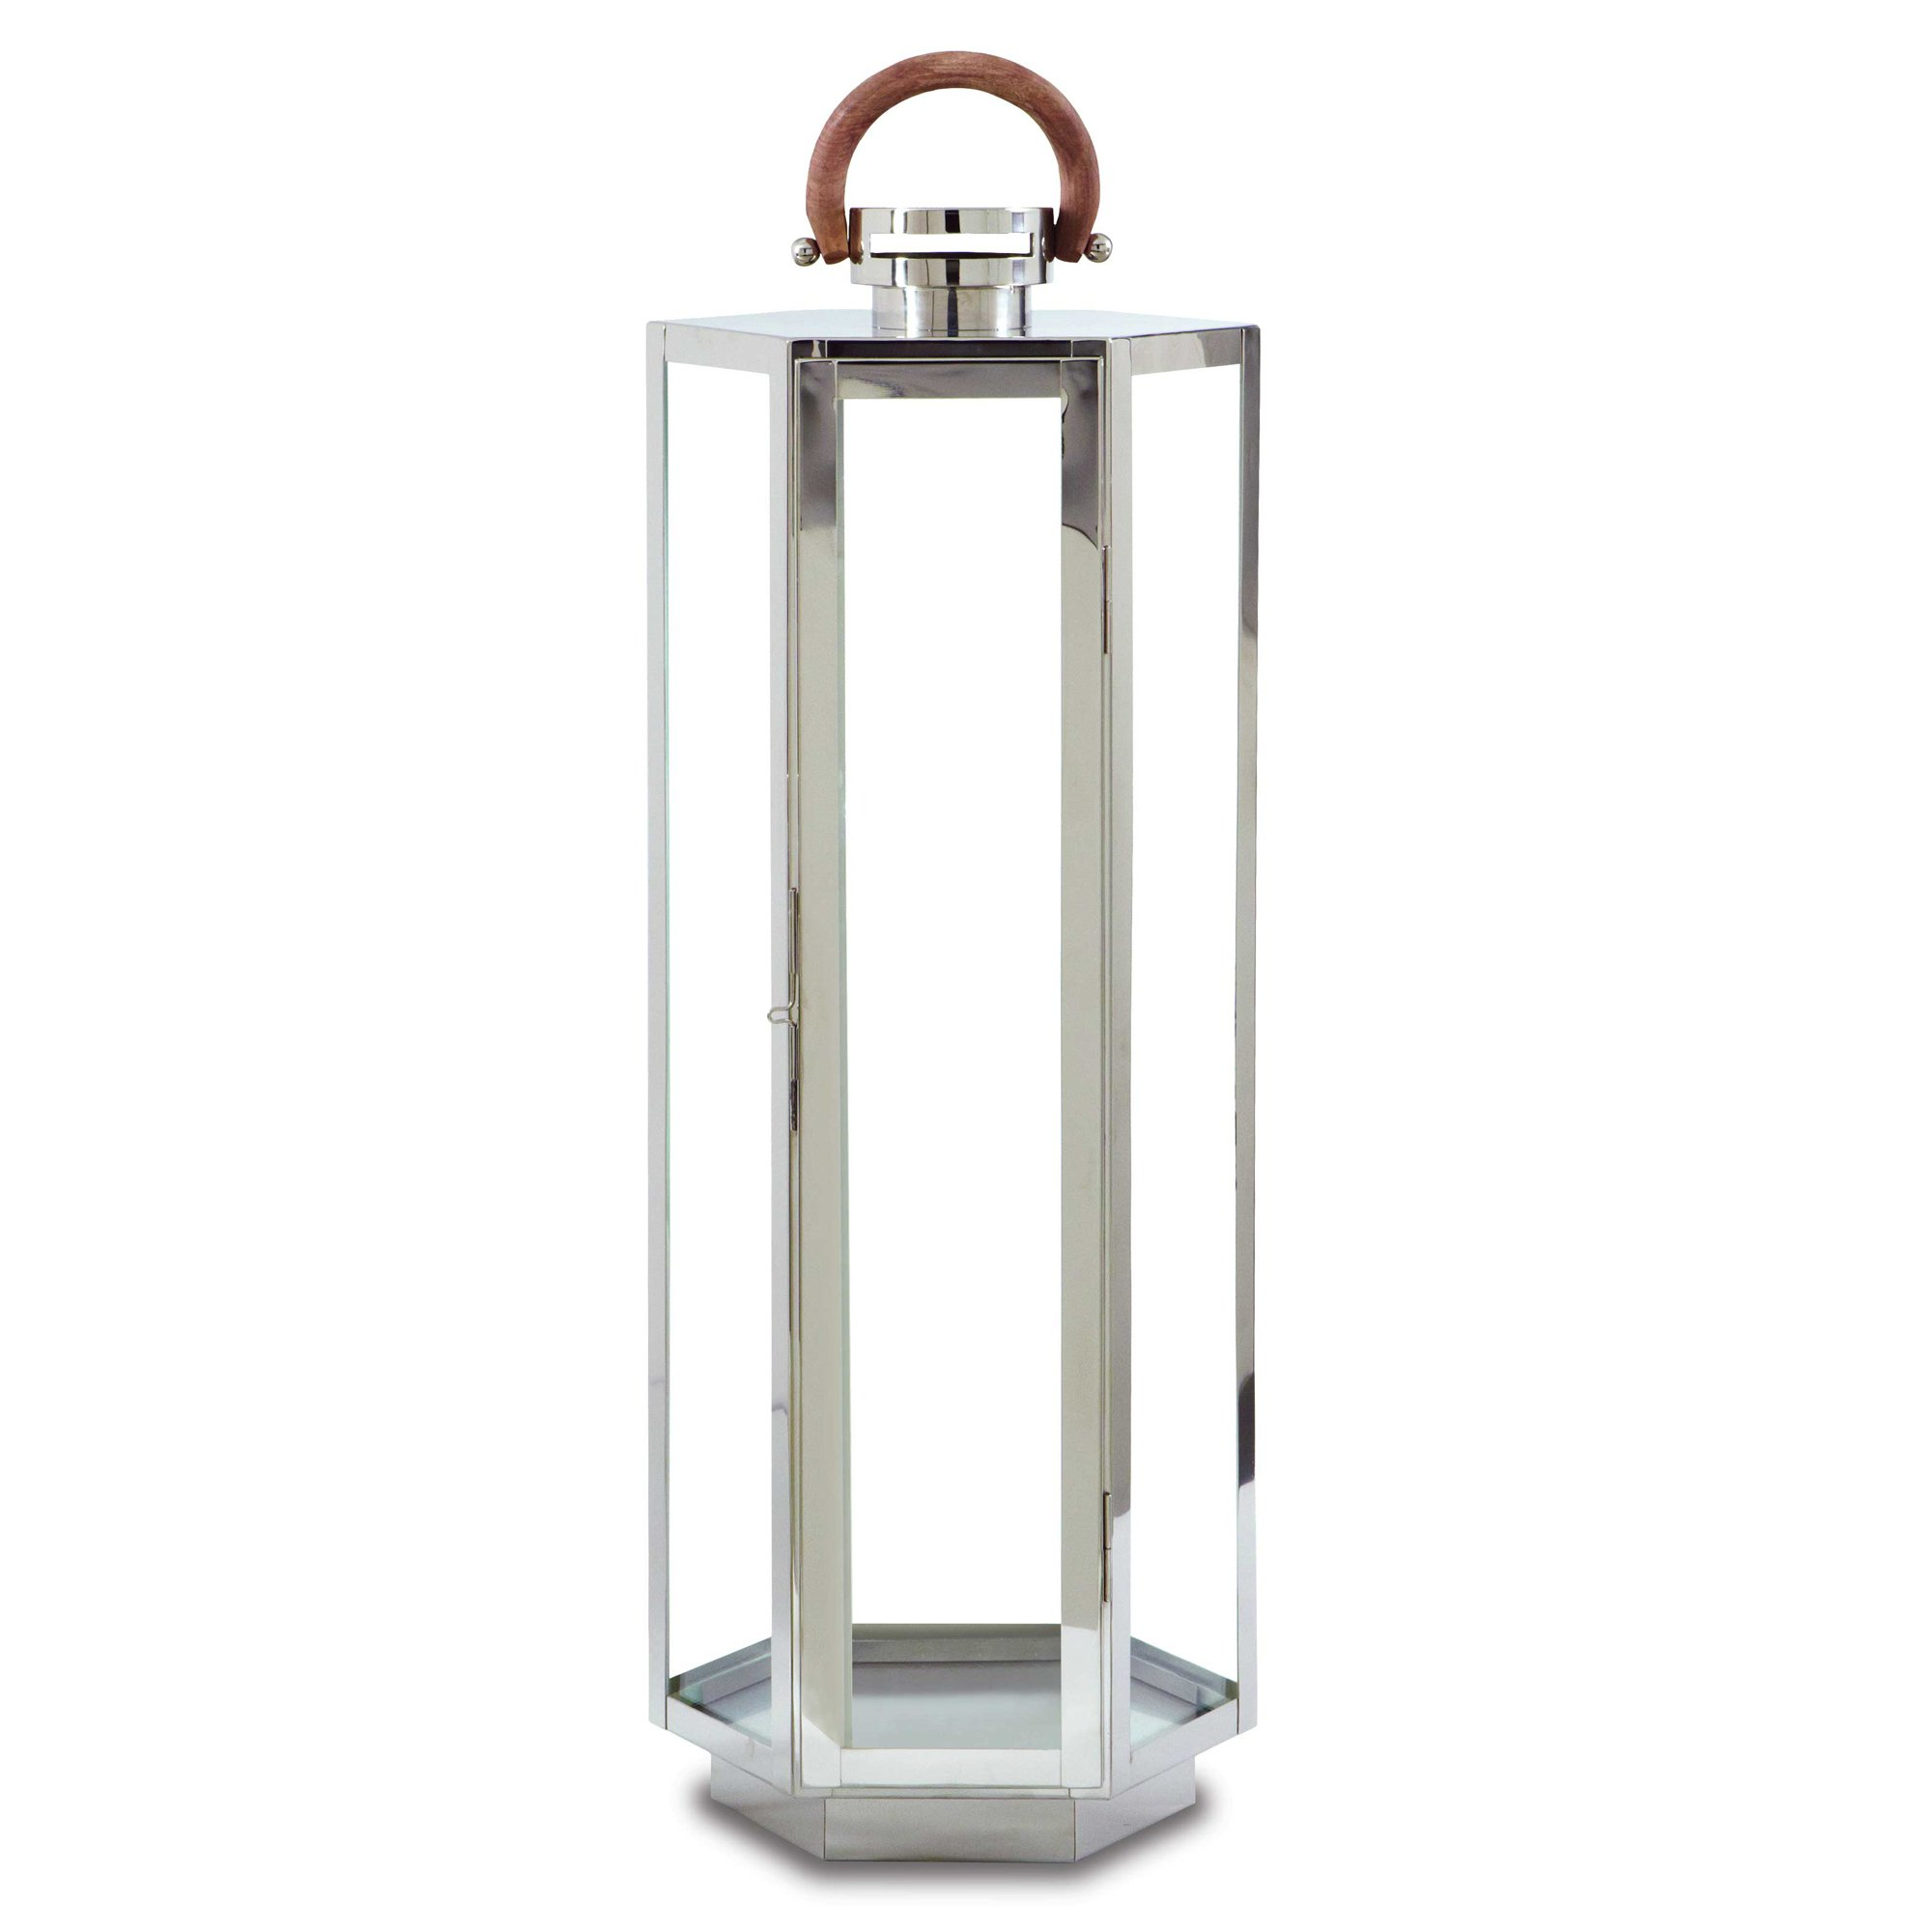 Pilgrim Home and Hearth 17525 Edgewater Tall Candle Lantern, Polished Nickel / Stainless Steel, 10 x 32''